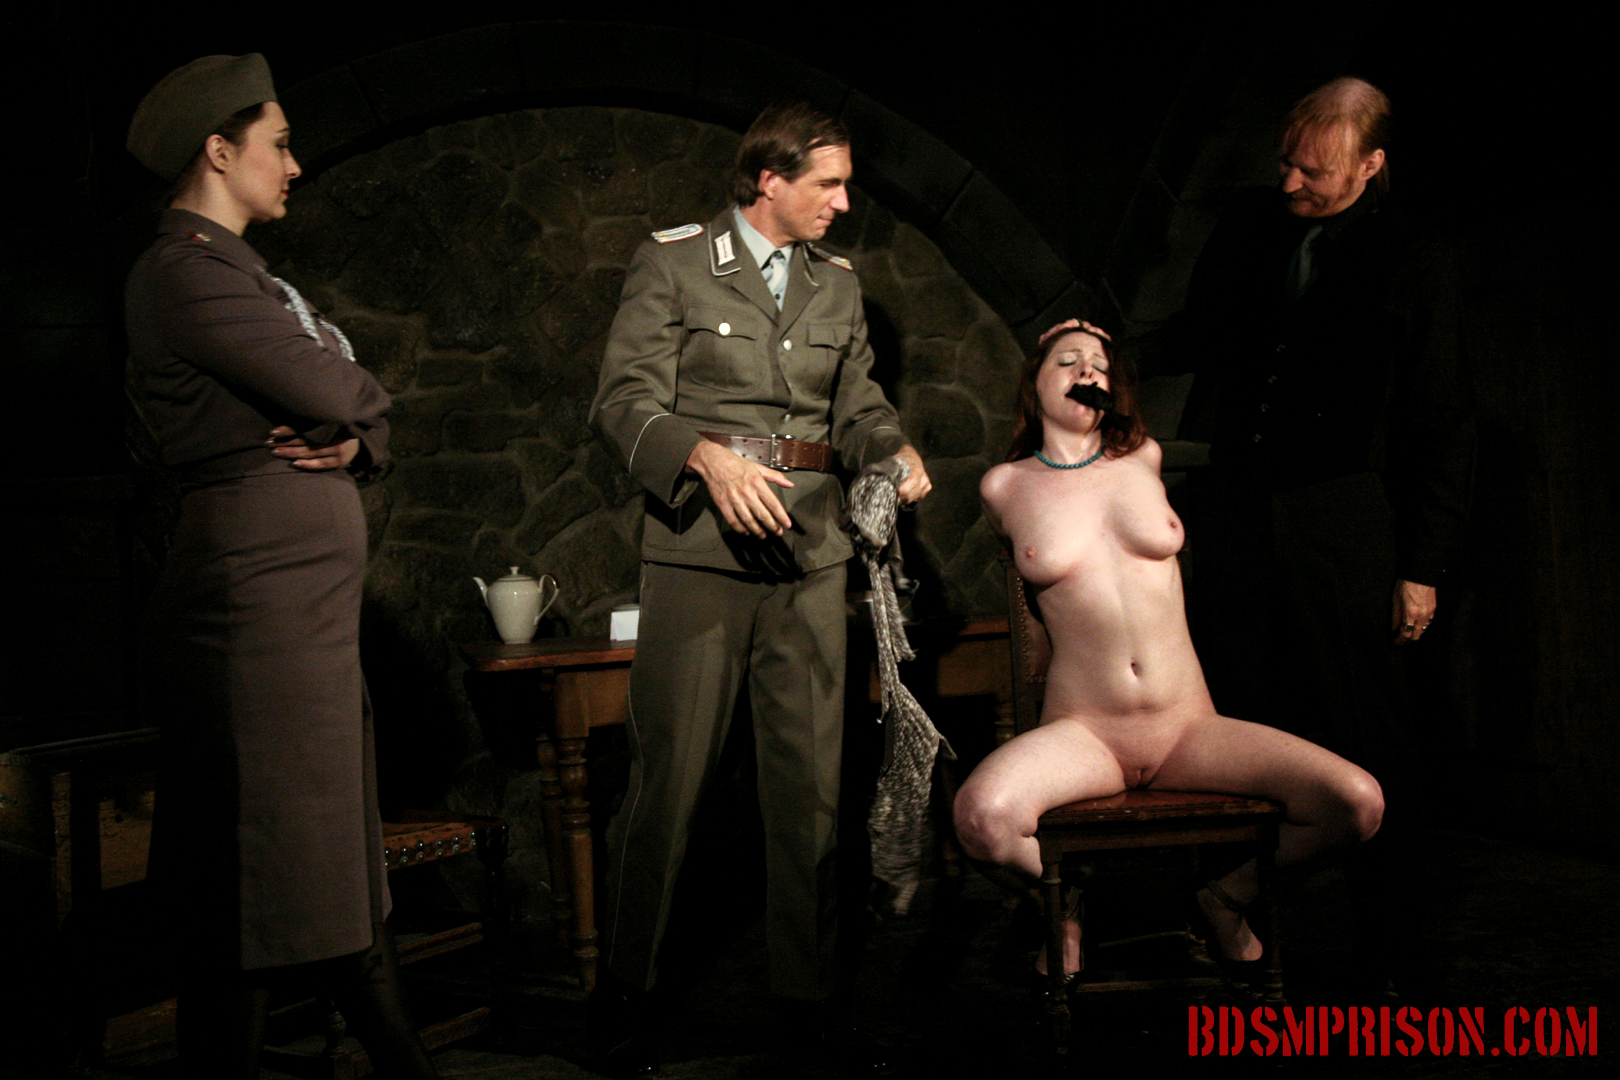 Sophie domination bondage degradation sex toys. Sophie will endure domination, bondage, breast, cunt and nipple torment, spanking, whipping and smacking, humiliation, sex toys here at BDSM prison. They even pour hot coffee over her breasts. Since her dress is wet, they rip it off!